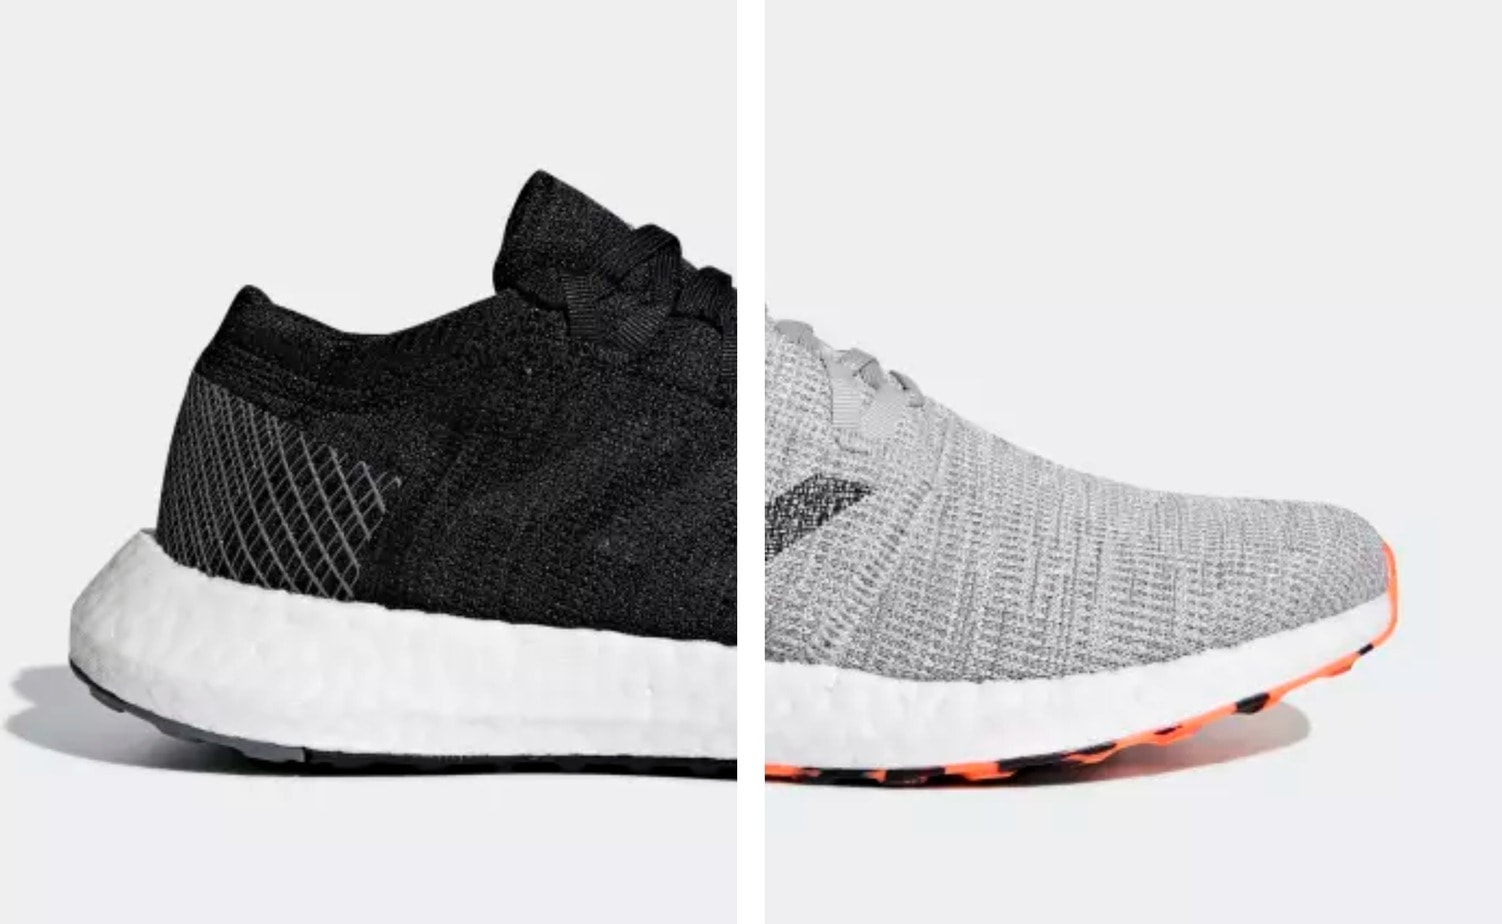 half off 8460a 058d9 The adidas PureBoost is back. After an interesting redesign in early 2017,  the PureBoost line has struggled to regain its footing.